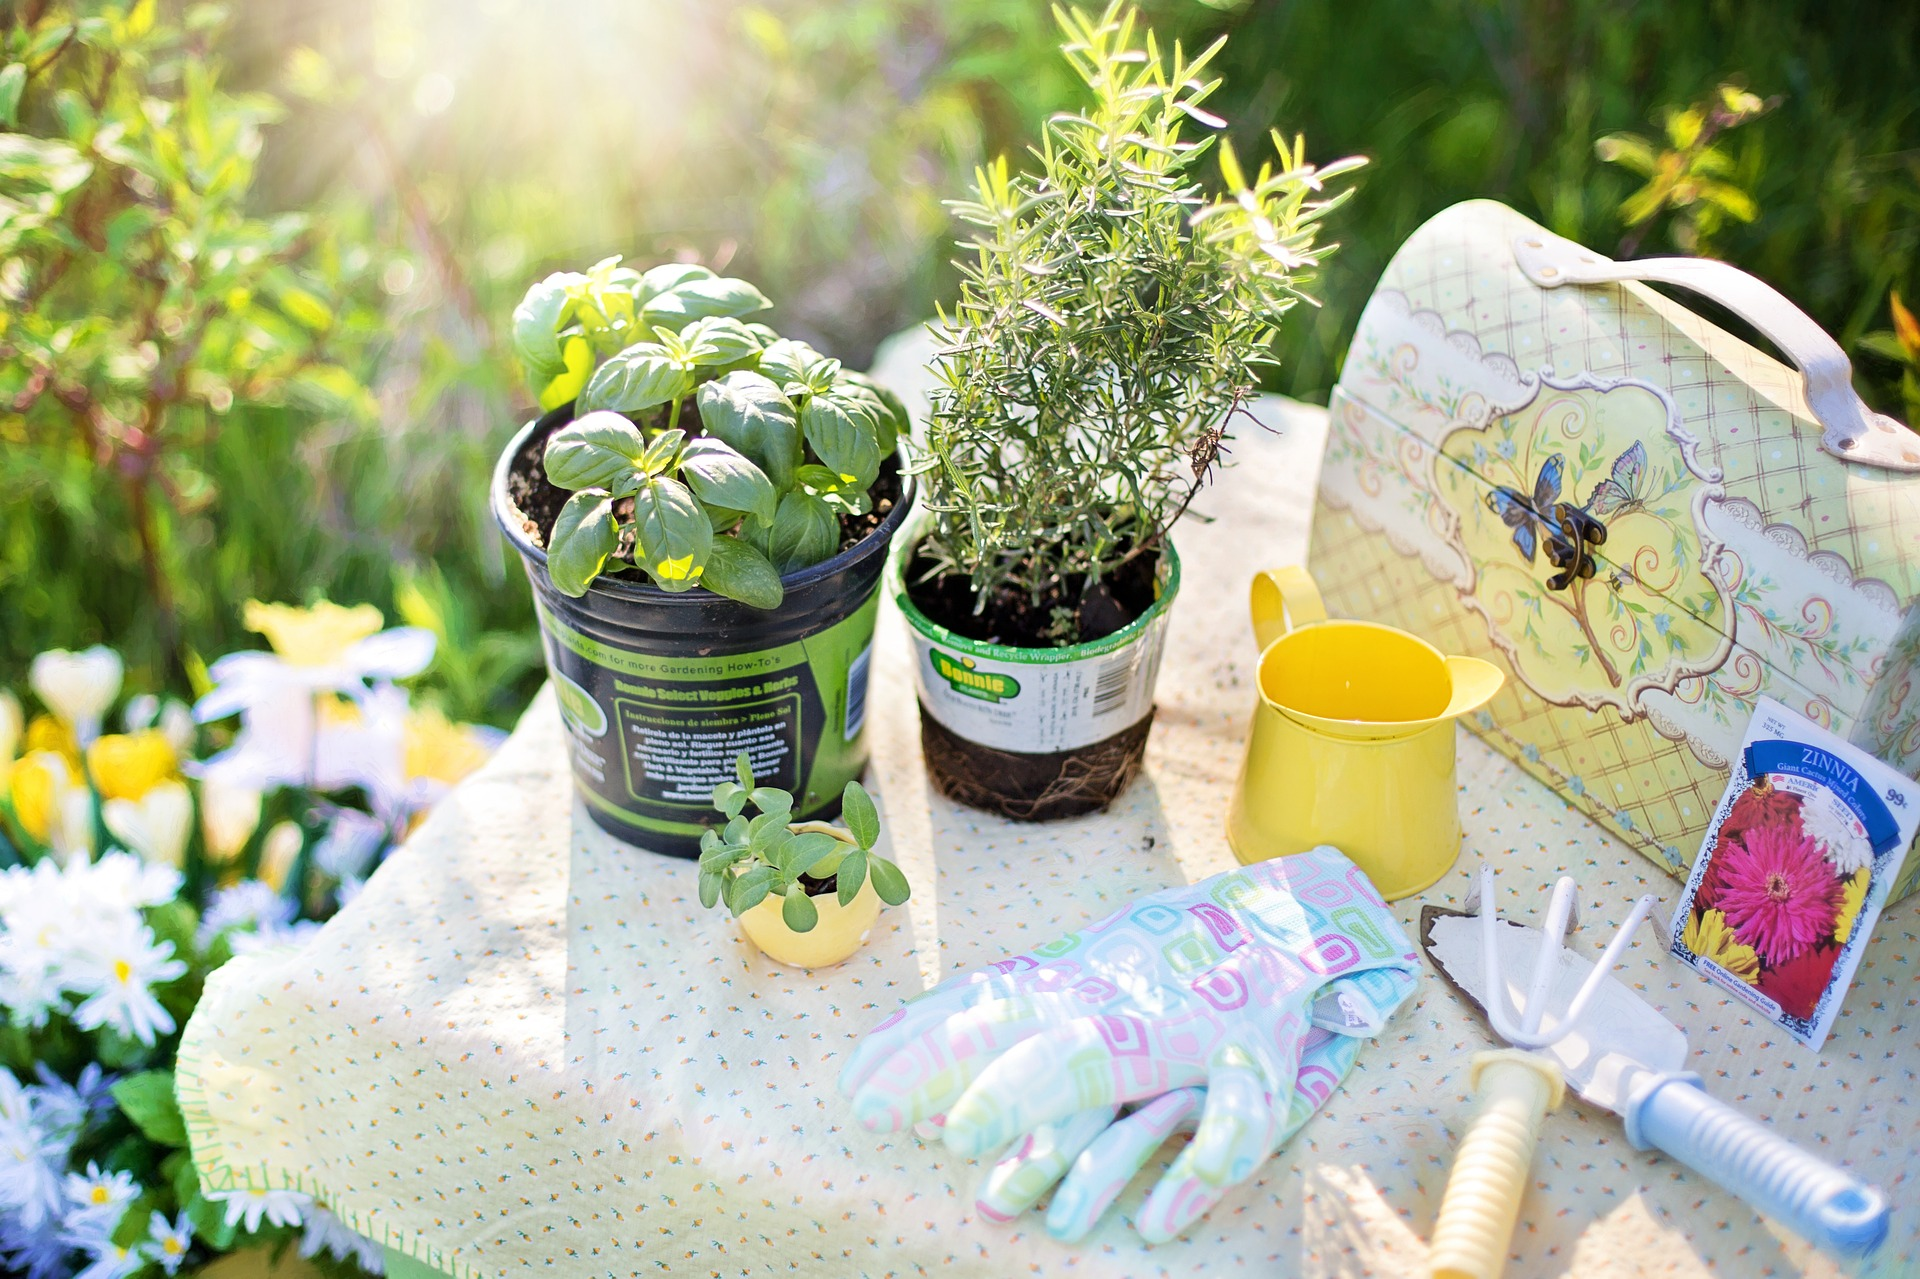 Summer Gardening Tools & Plants